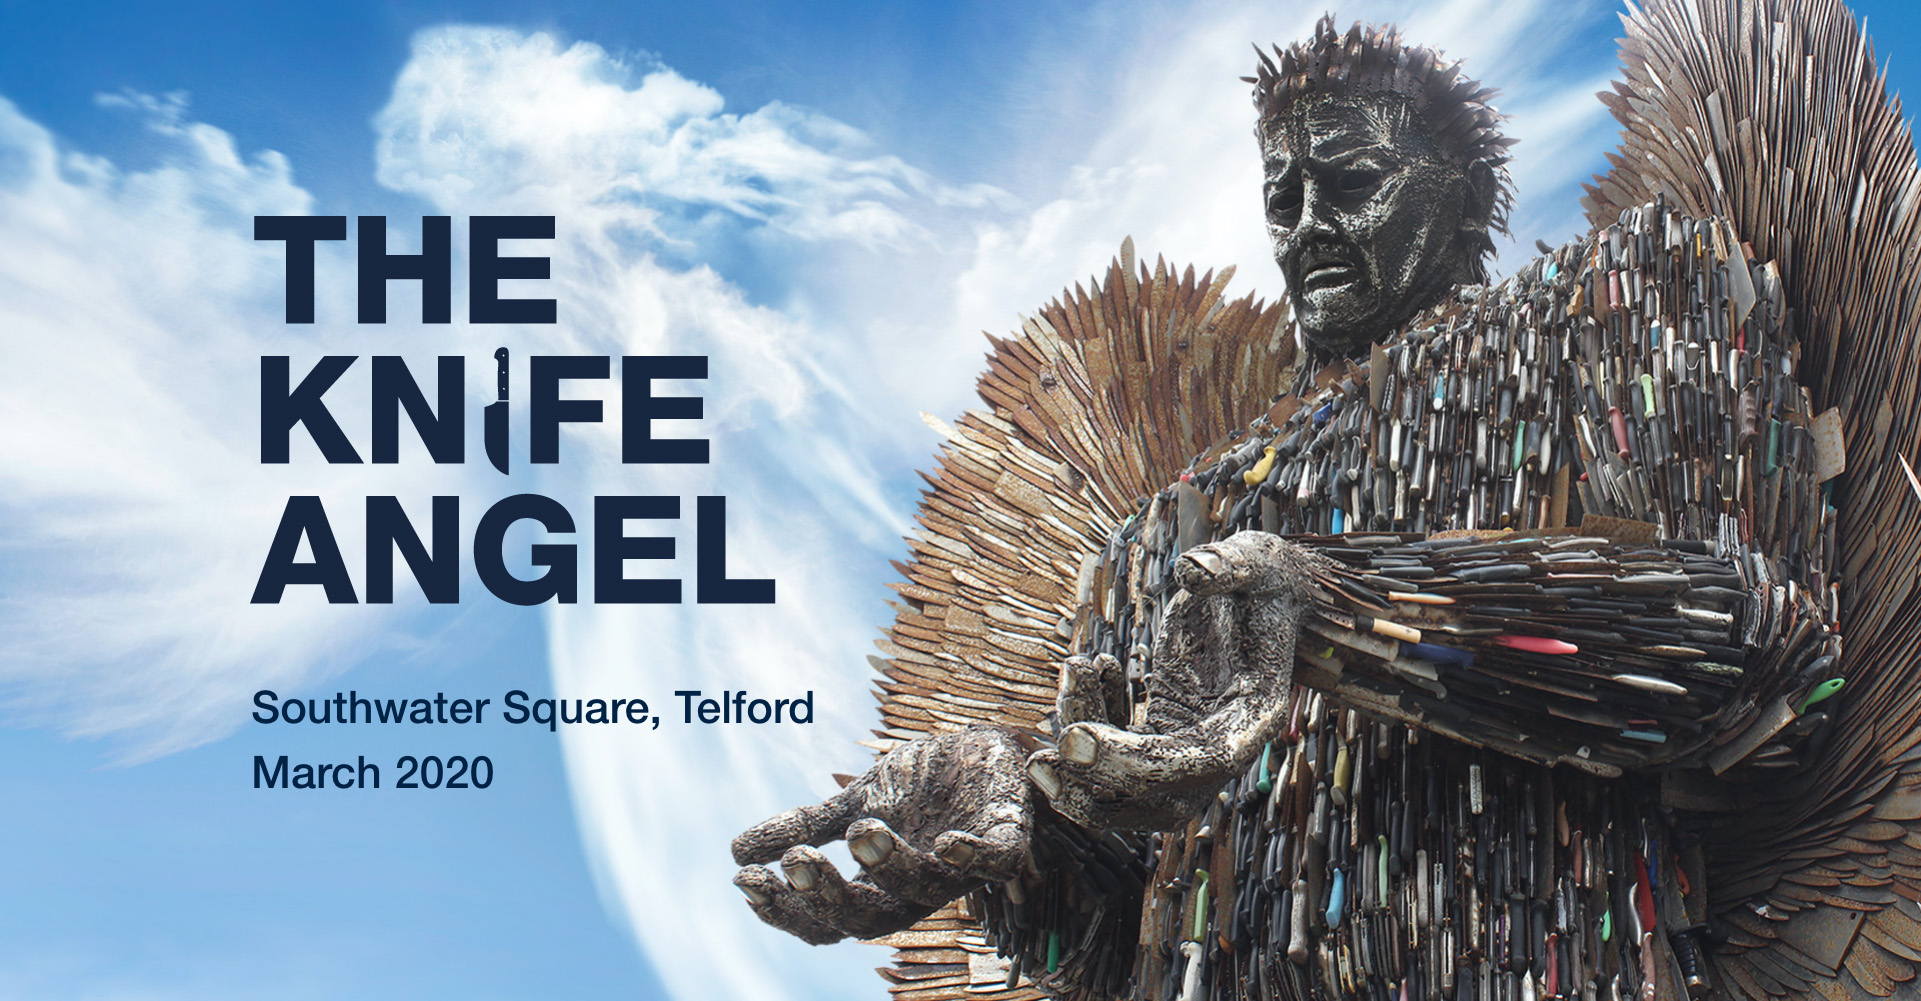 The Knife Angel Southwater Square, Telford March 2020